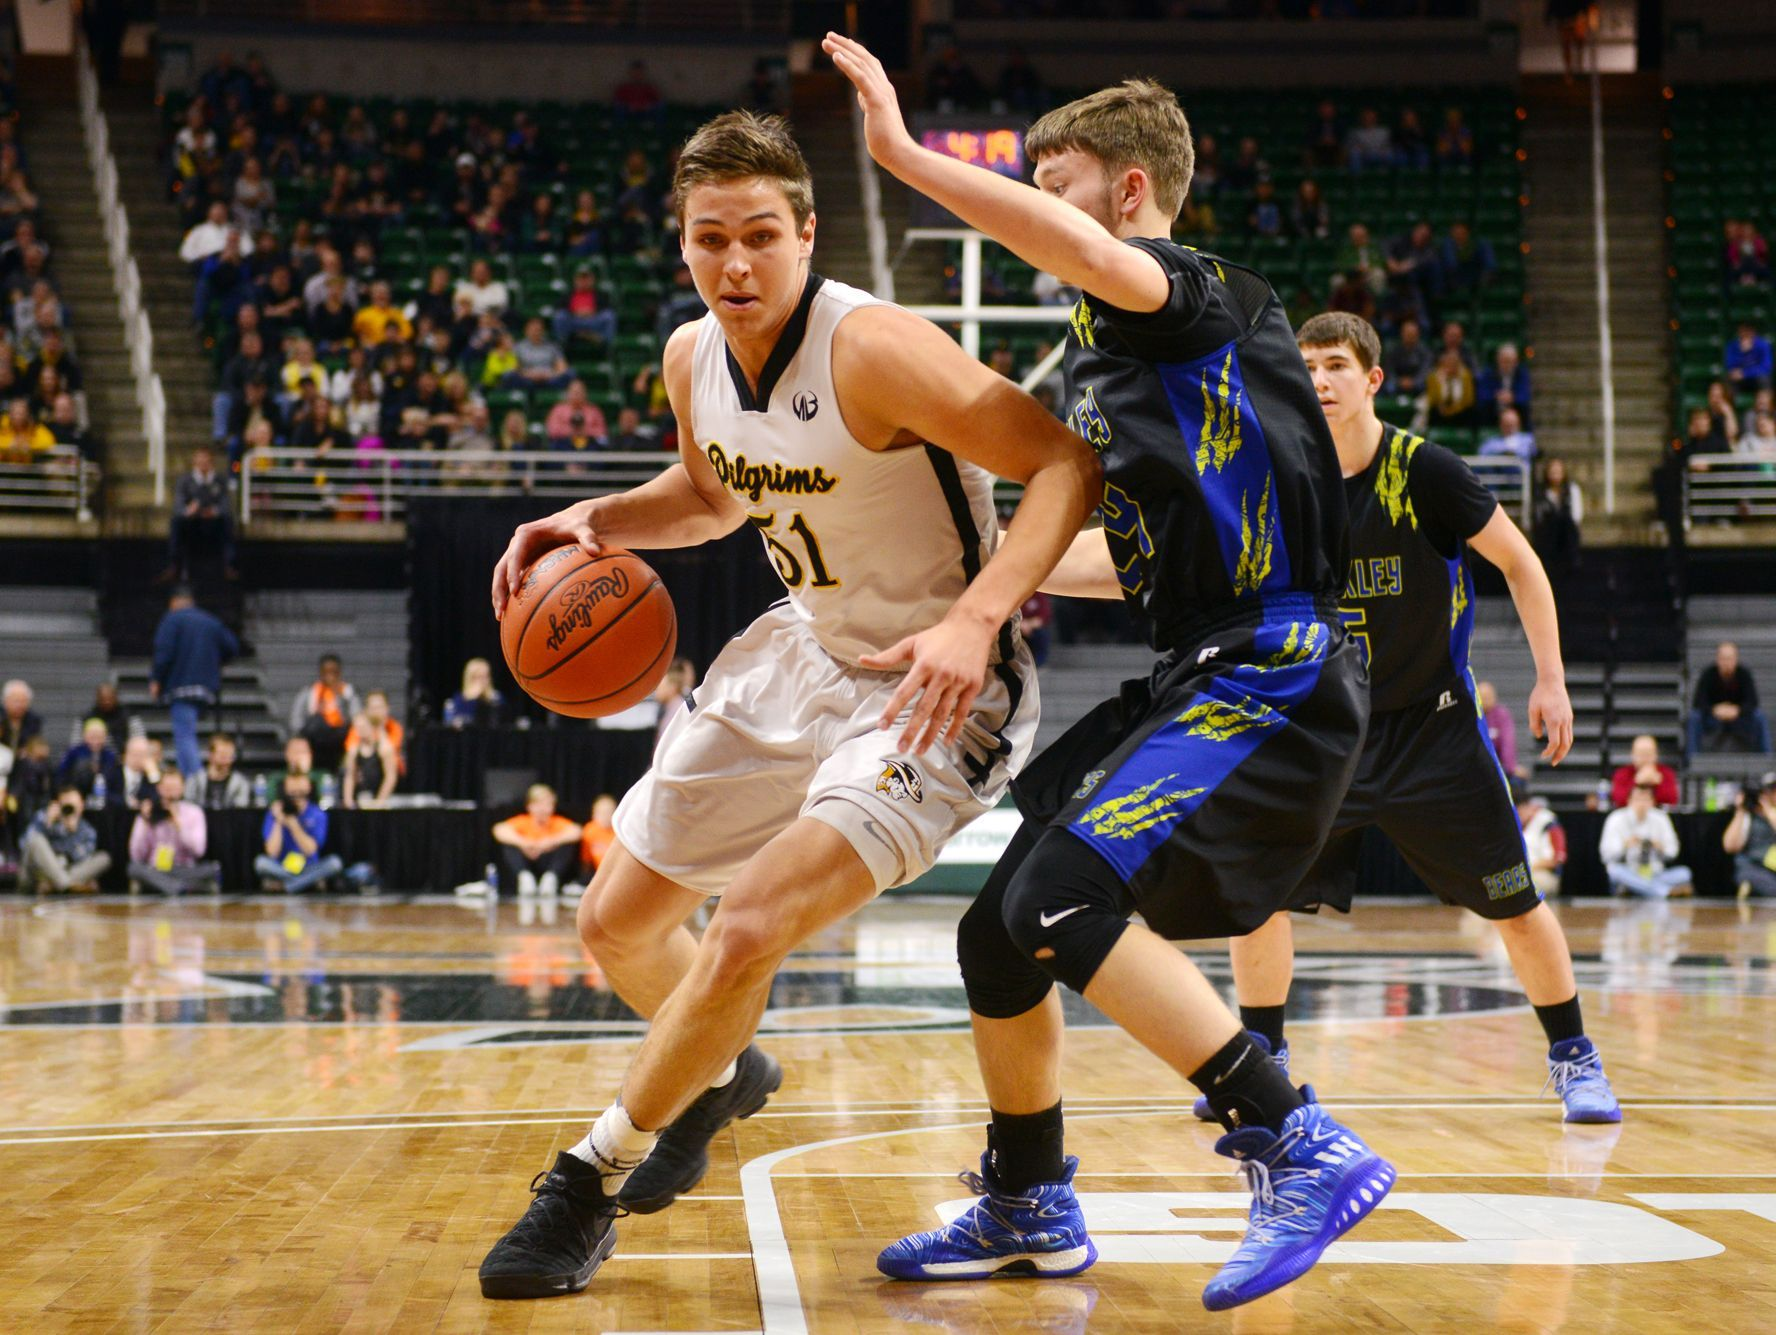 Lansing Christian's Preston Granger tries to dribble past Buckley's Brock Beeman during the state semifinal against Buckley on Thursday, March 23, 2017 at the Breslin Center in East Lansing.